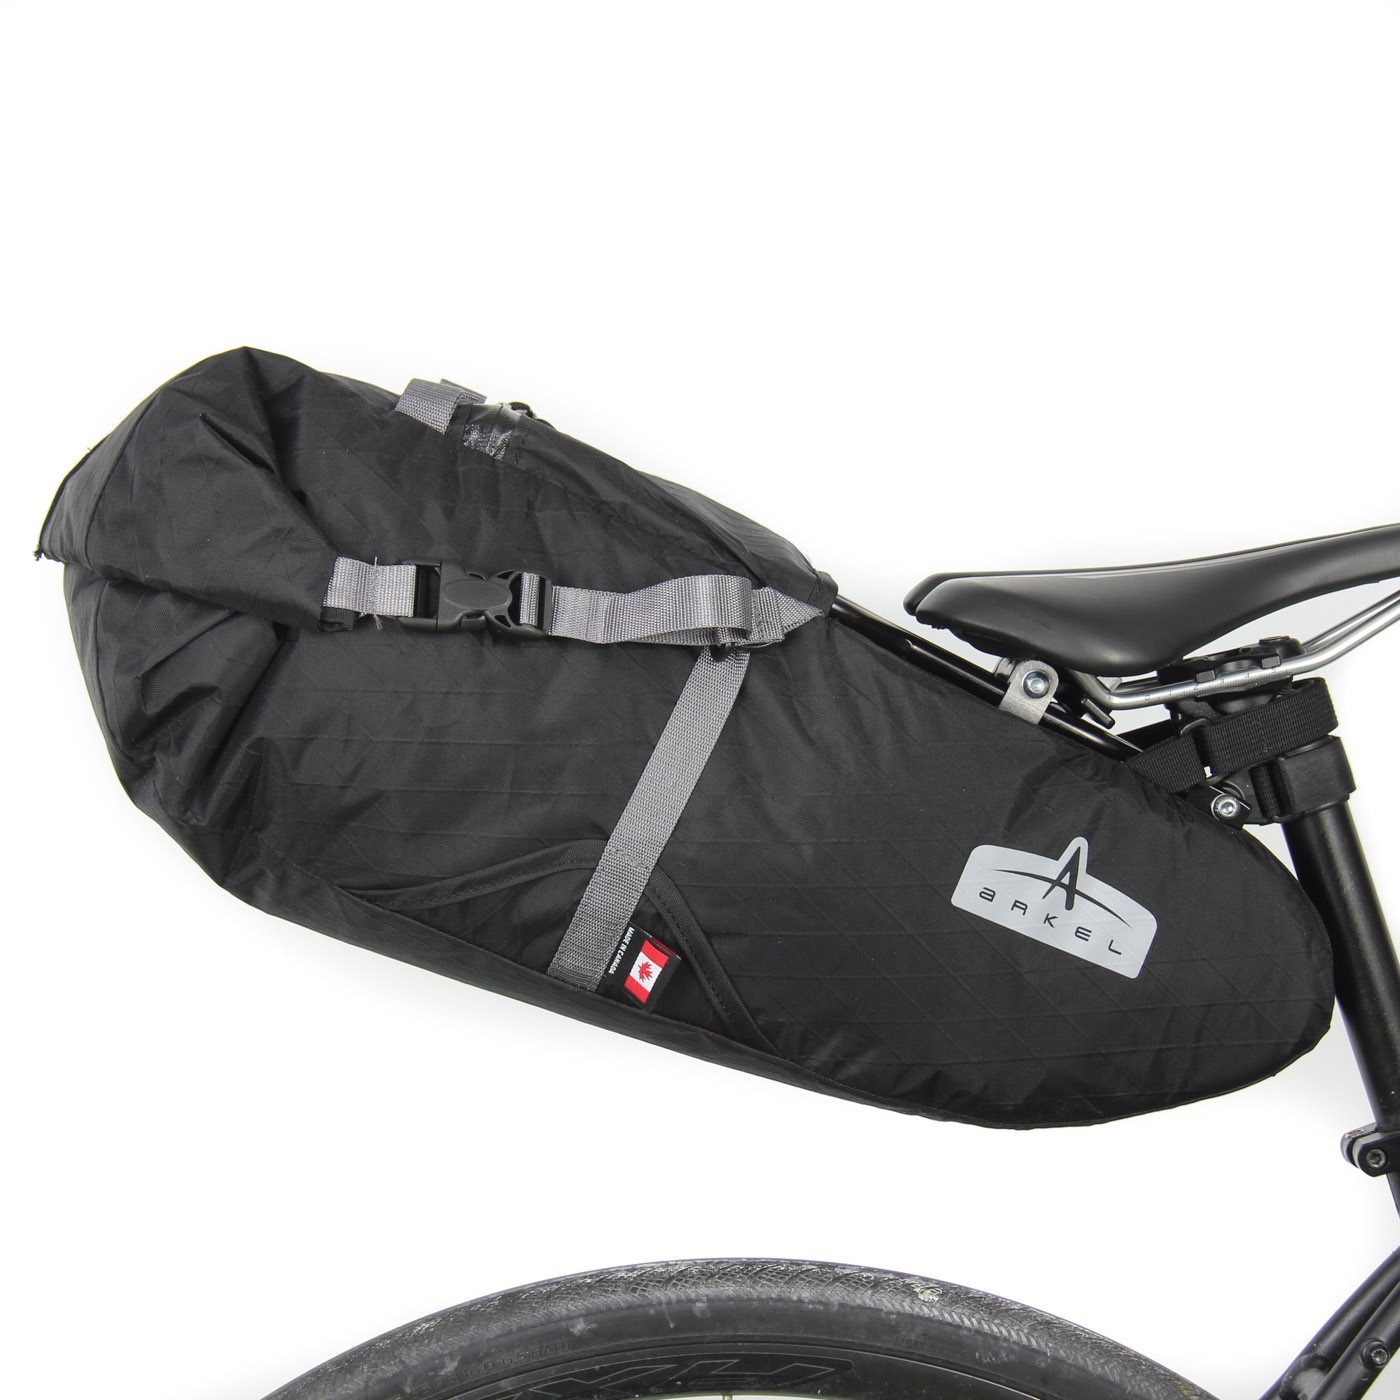 Seatpacker 15 Bikepacking Seat Bag By Arkel